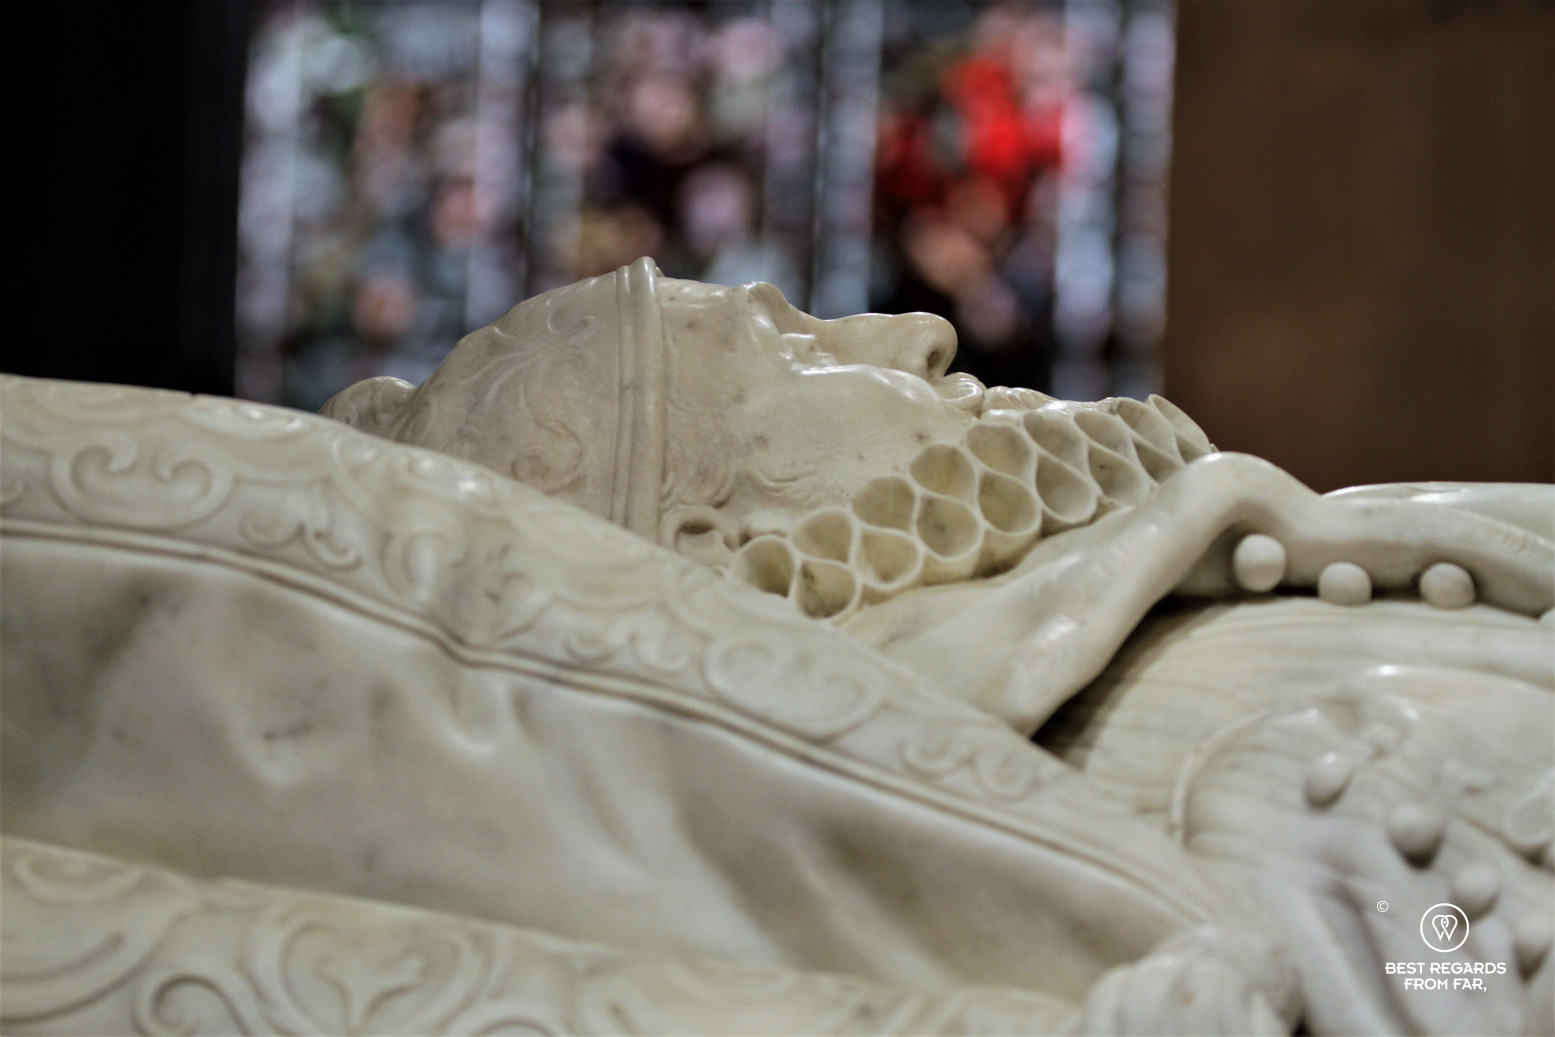 The tomb of William of Orange, New Church, Delft, The Netherlands